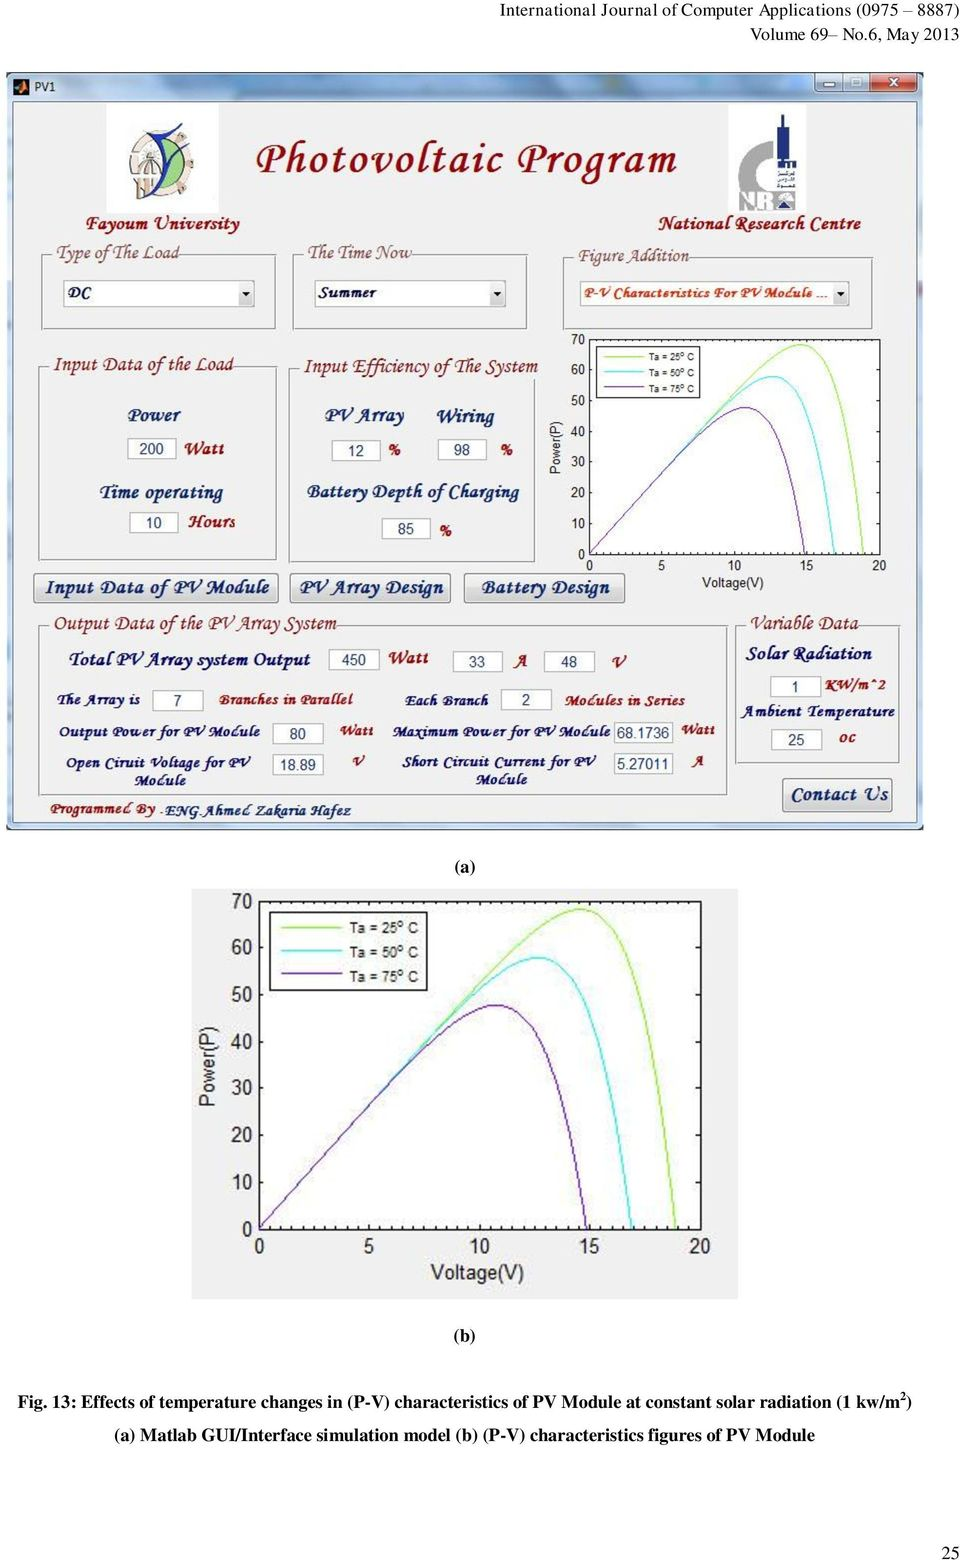 characteristics of PV Module at constant solar